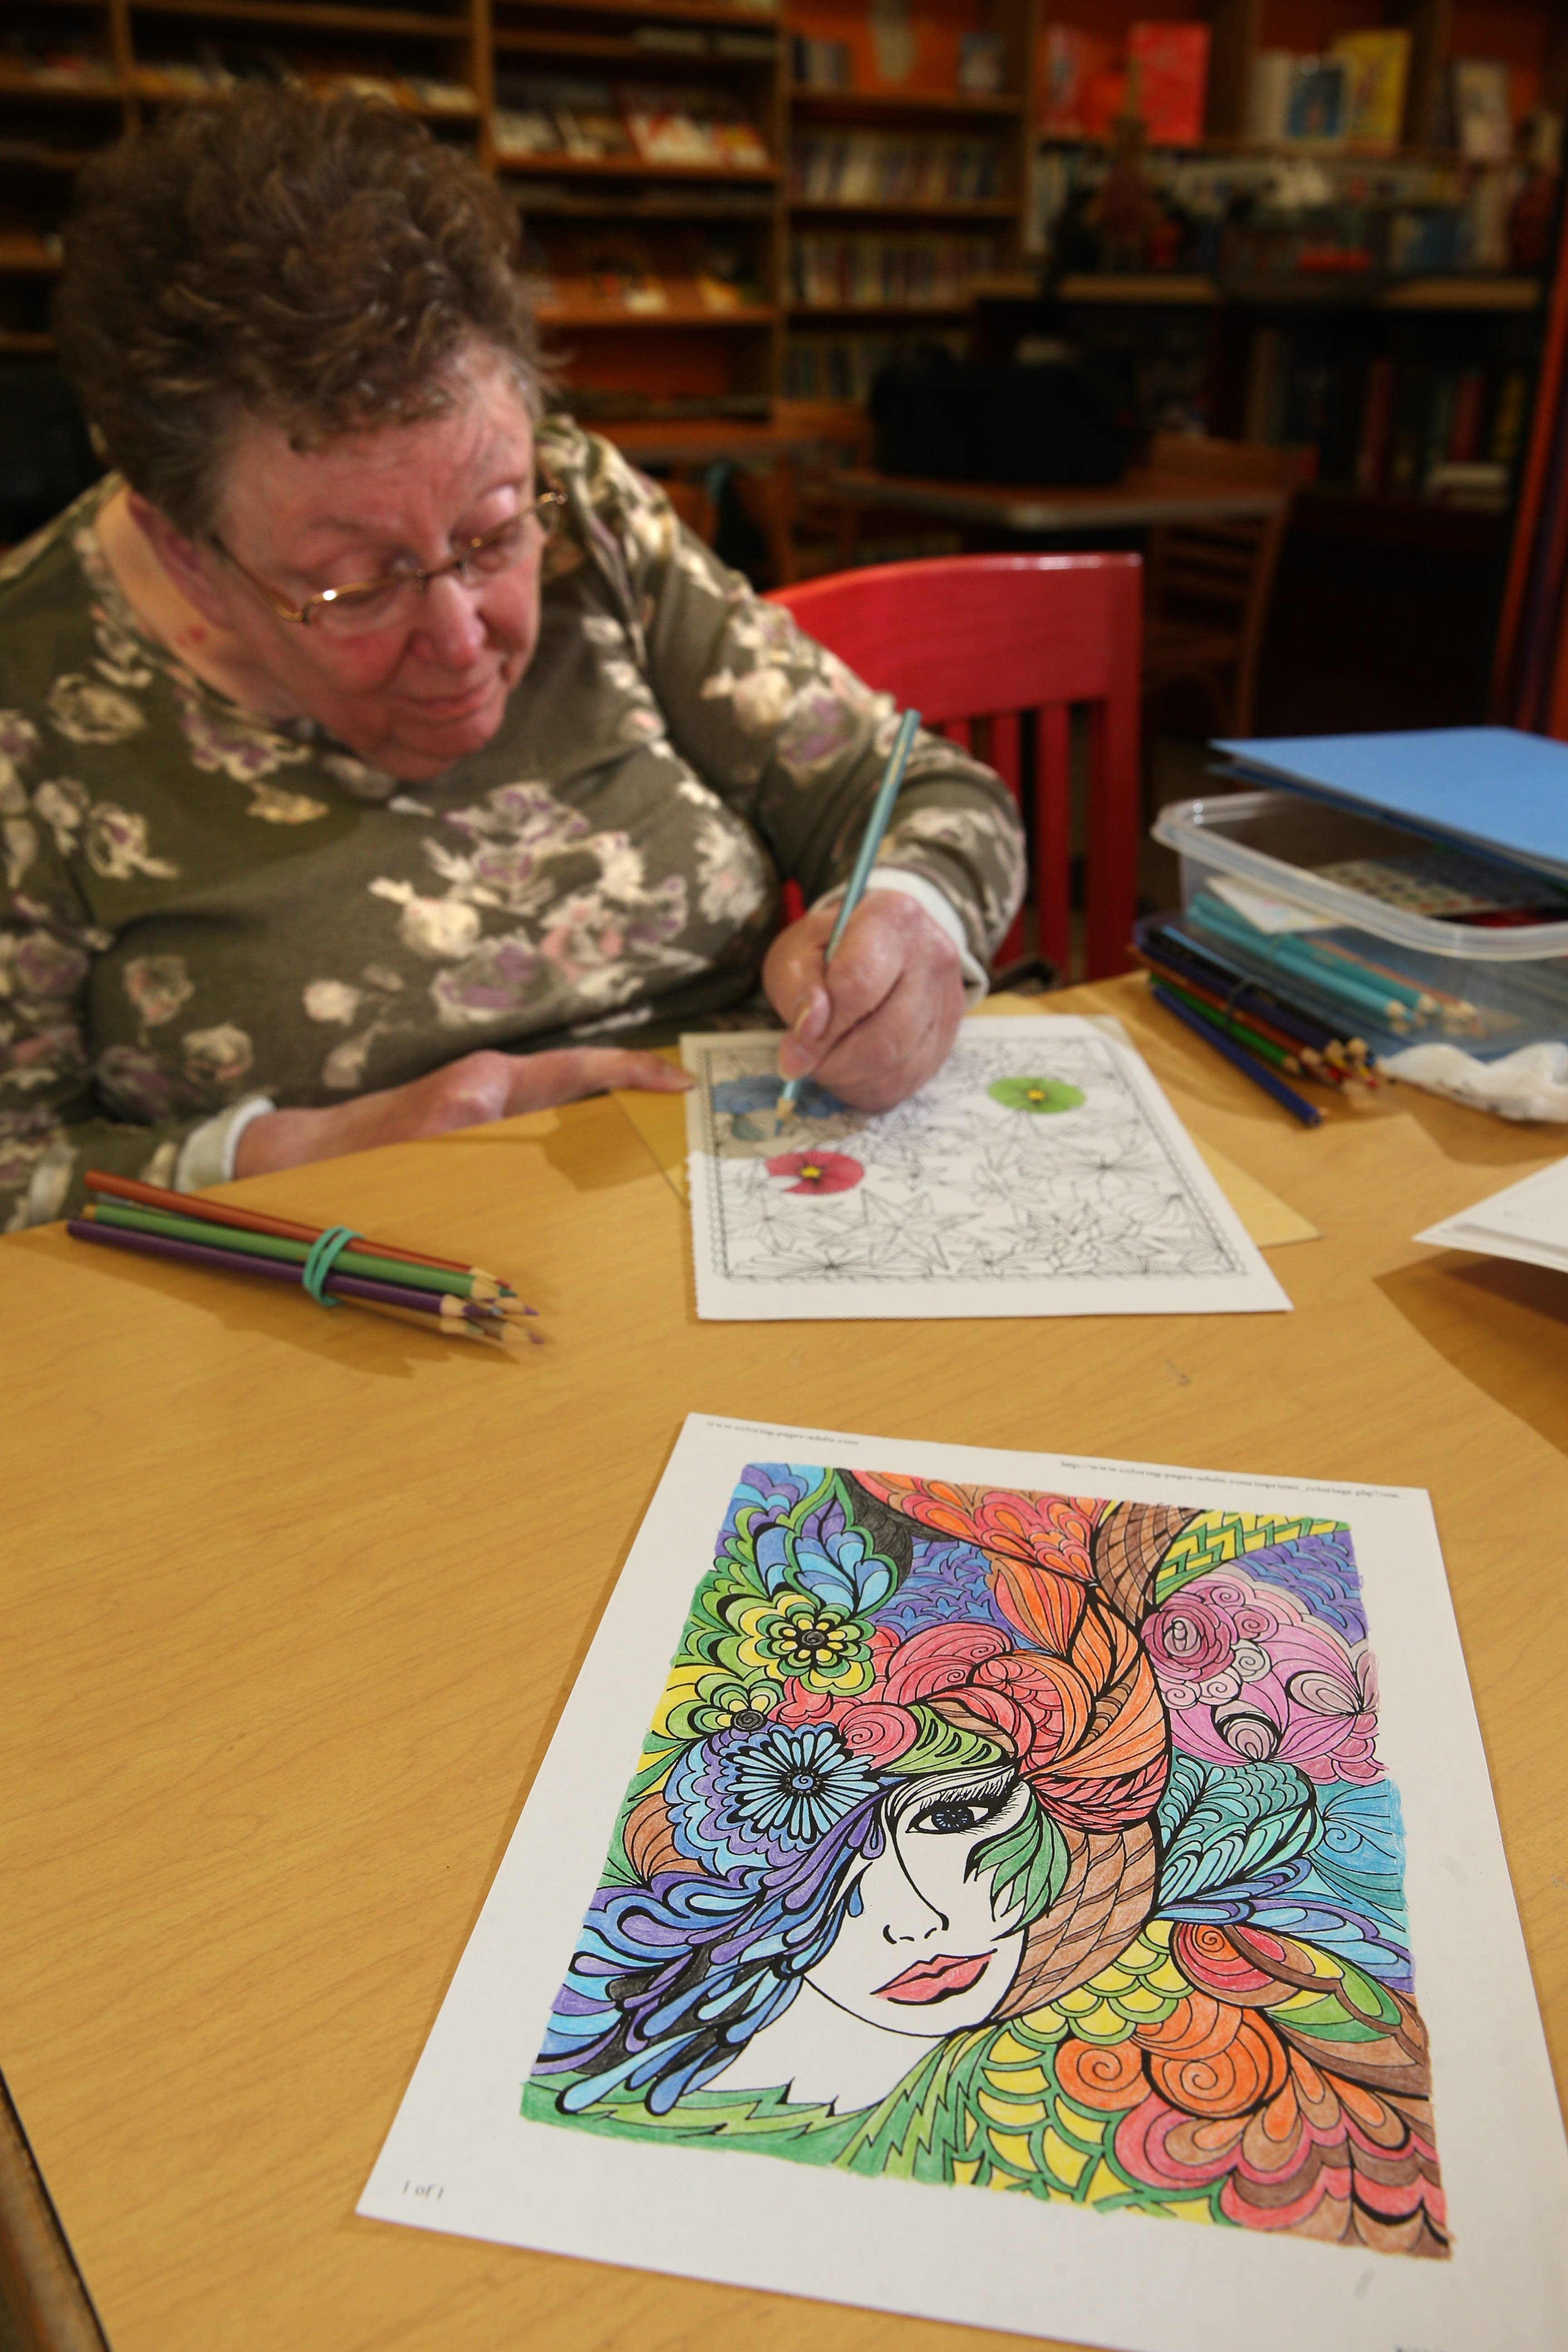 Brighton Place Library, 999 Brighton Road, Tonawanda, hosts adult coloring sessions at noon and 5 p.m. on Tuesdays. Joyce Abt, of the Town of Tonawanda, finds coloring to be very relaxing.